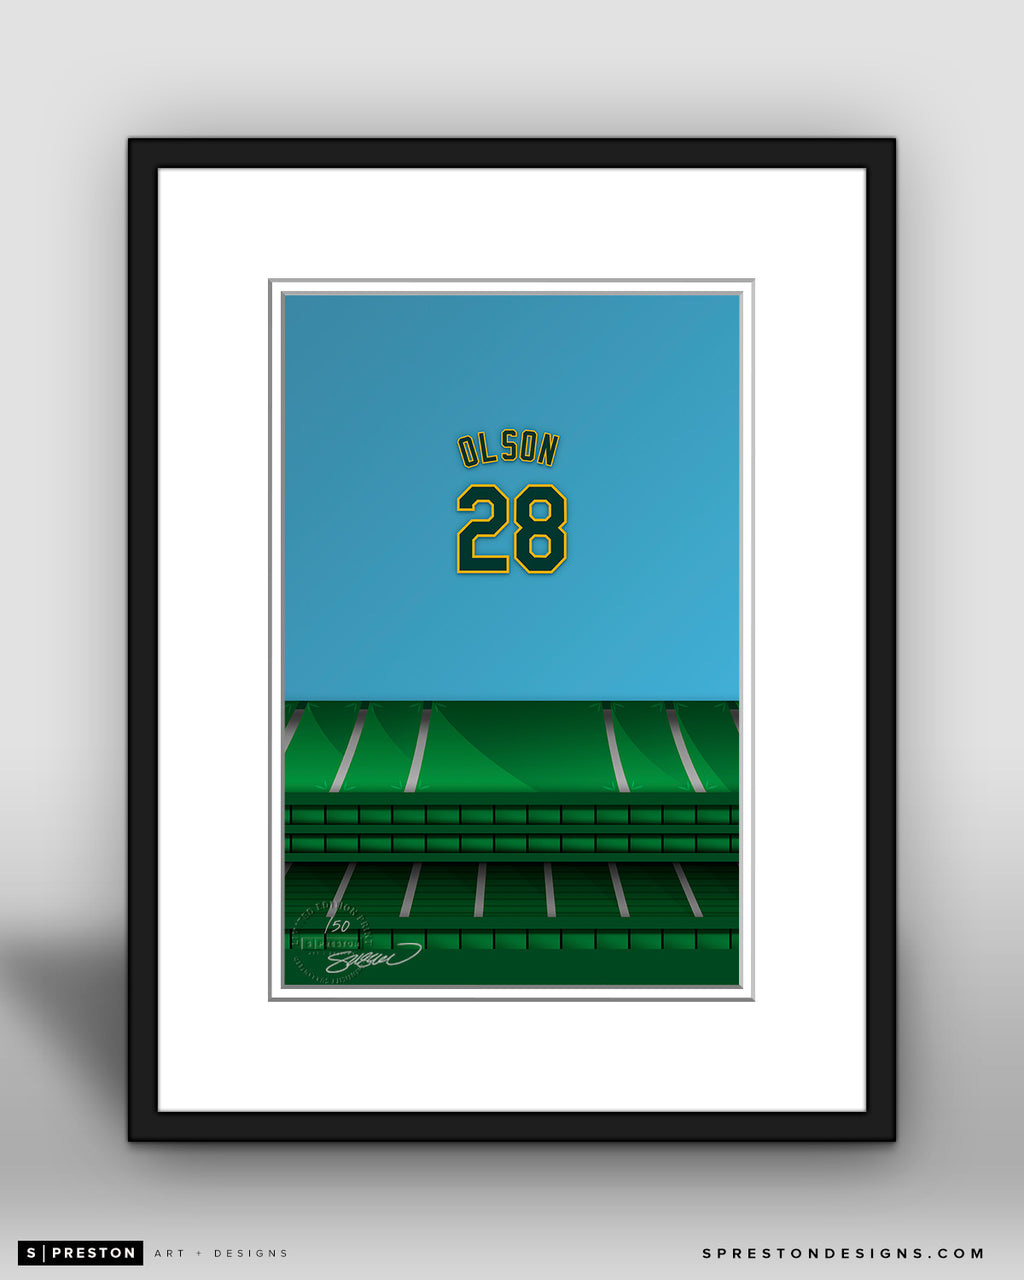 Minimalist Oakland Coliseum - Player Series - Matt Olson - Oakland Athletics - S. Preston